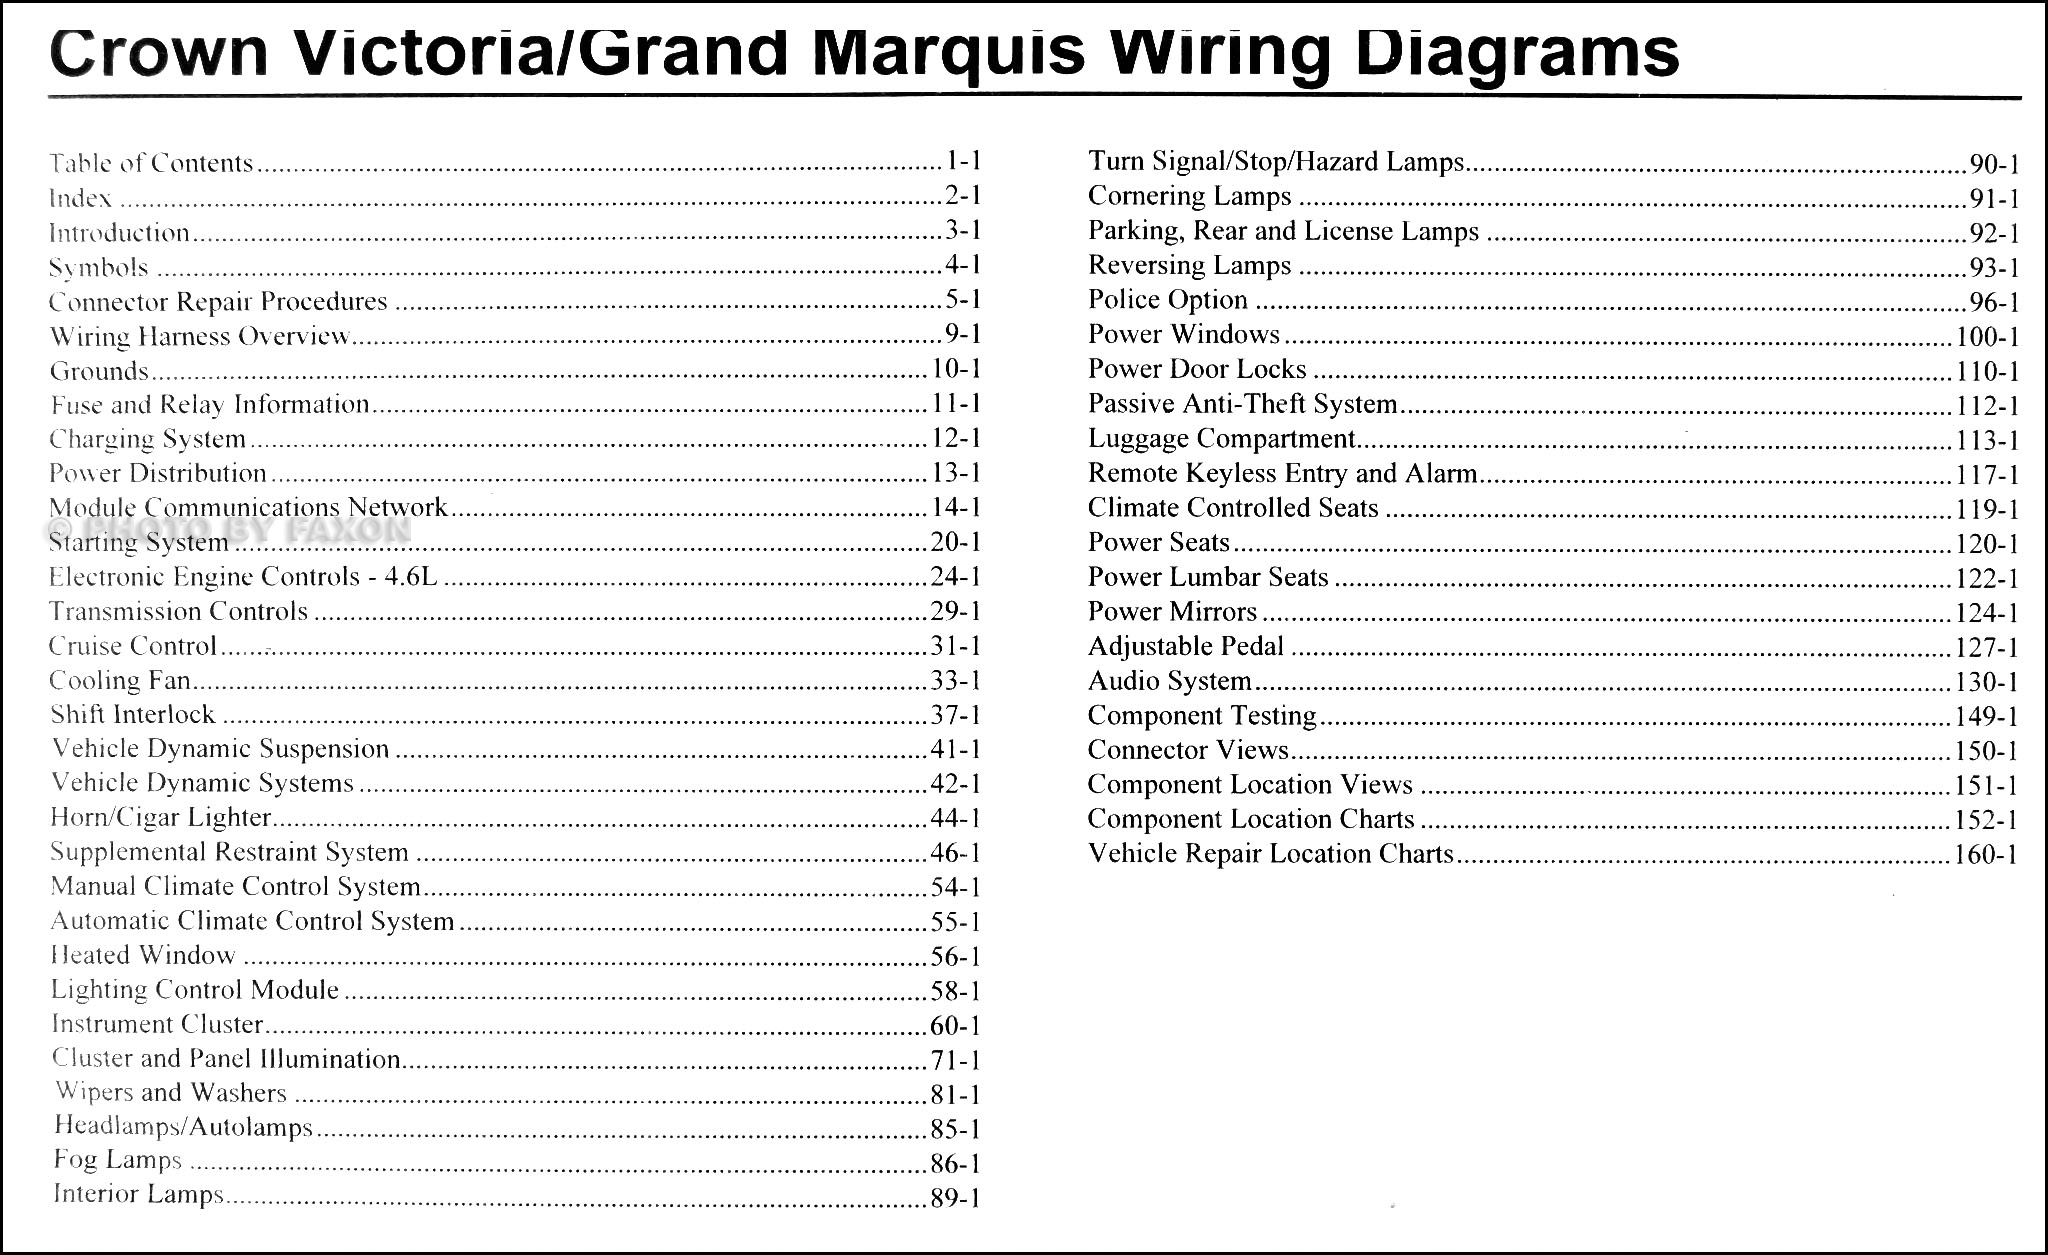 2010 Crown Victoria Wiring Diagram Diagrams Ford Grand Marquis Manual Original Rh Faxonautoliterature Com Vic